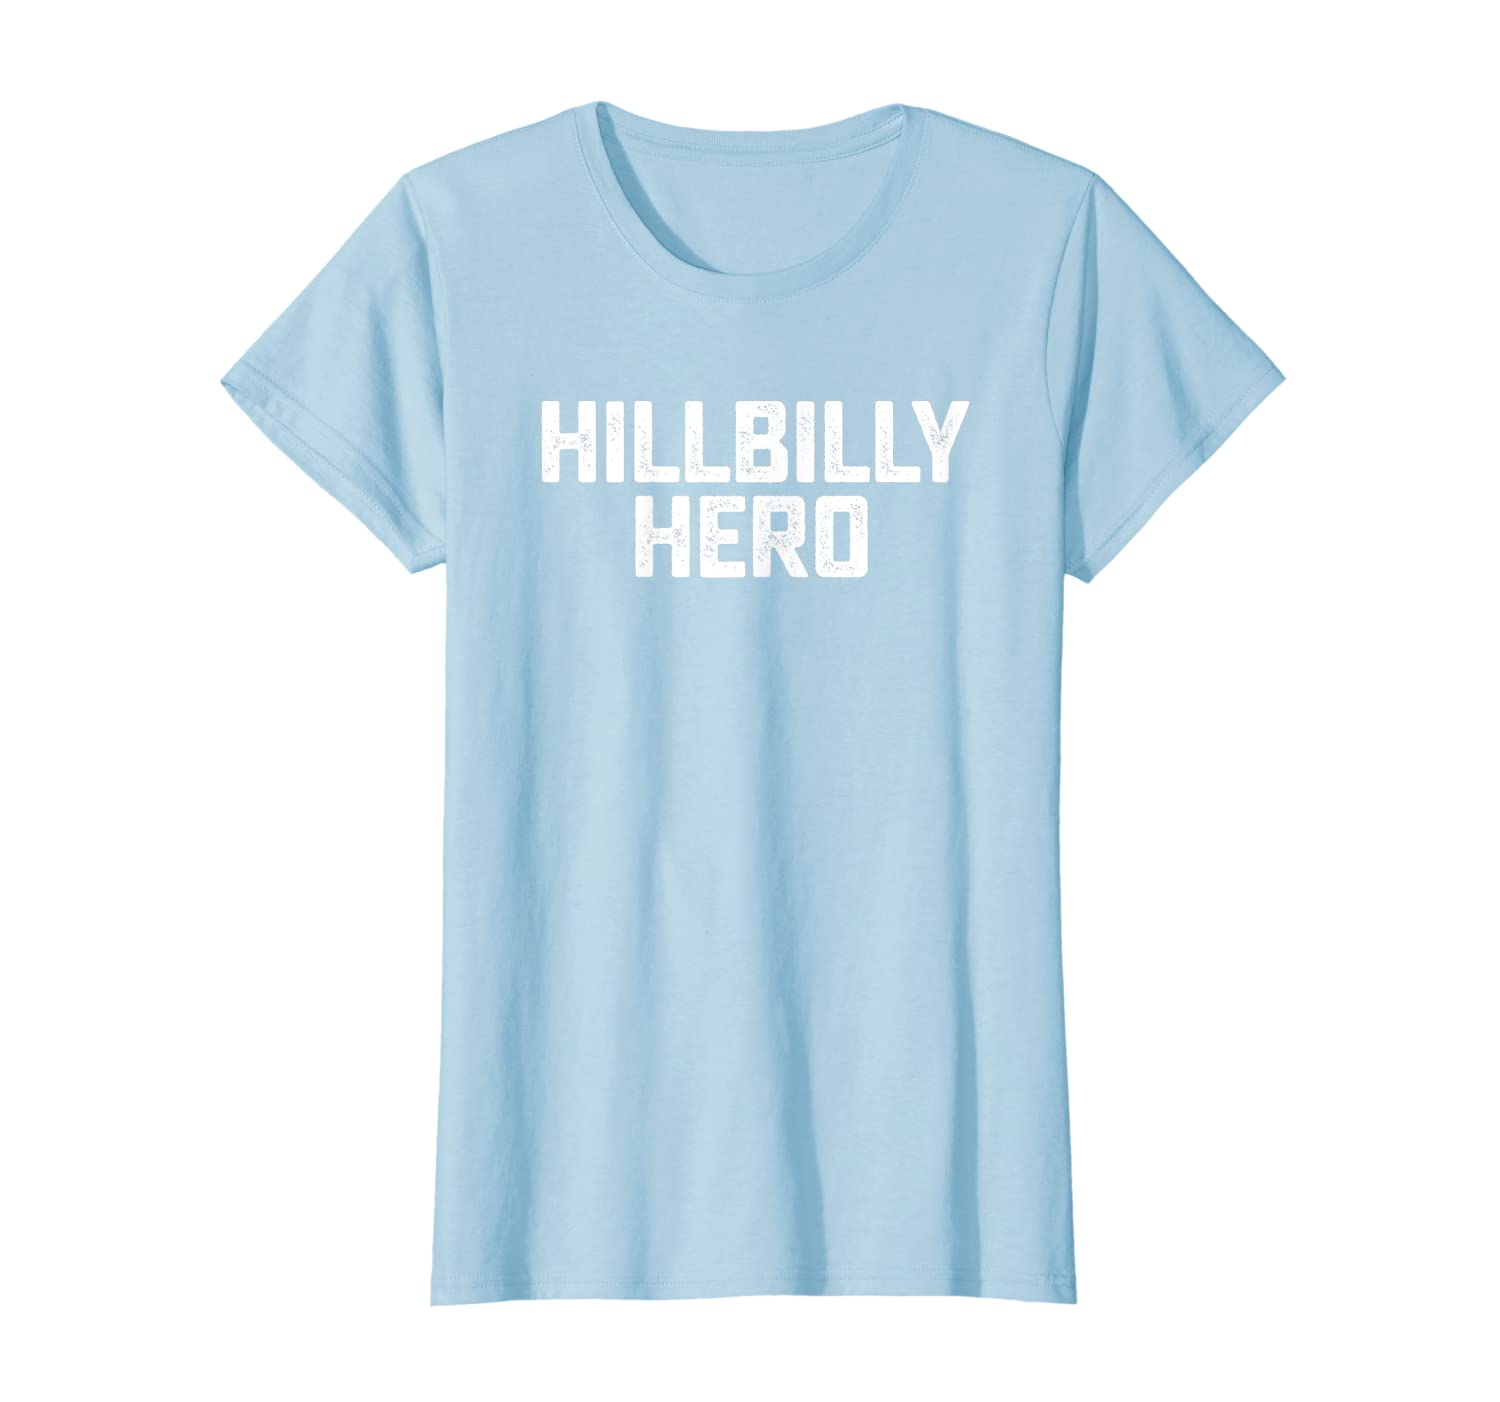 HILLBILLY HERO Southern and Mountain Man Pride T-Shirt